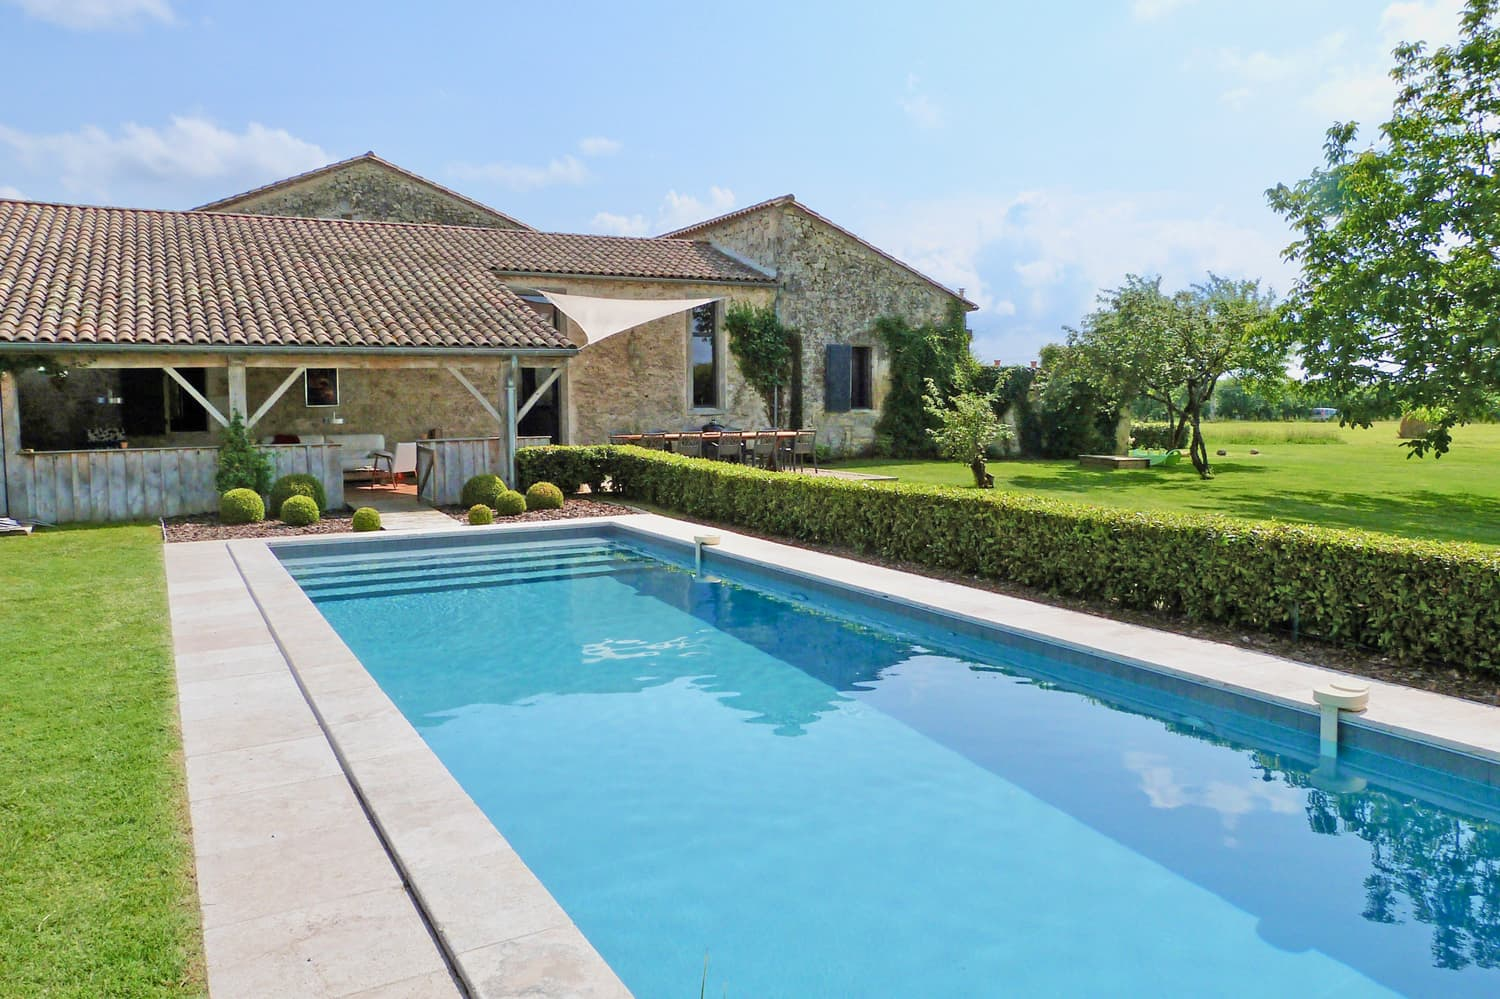 Holiday rental accommodation in Dordogne with private swimming pool | Mounicat